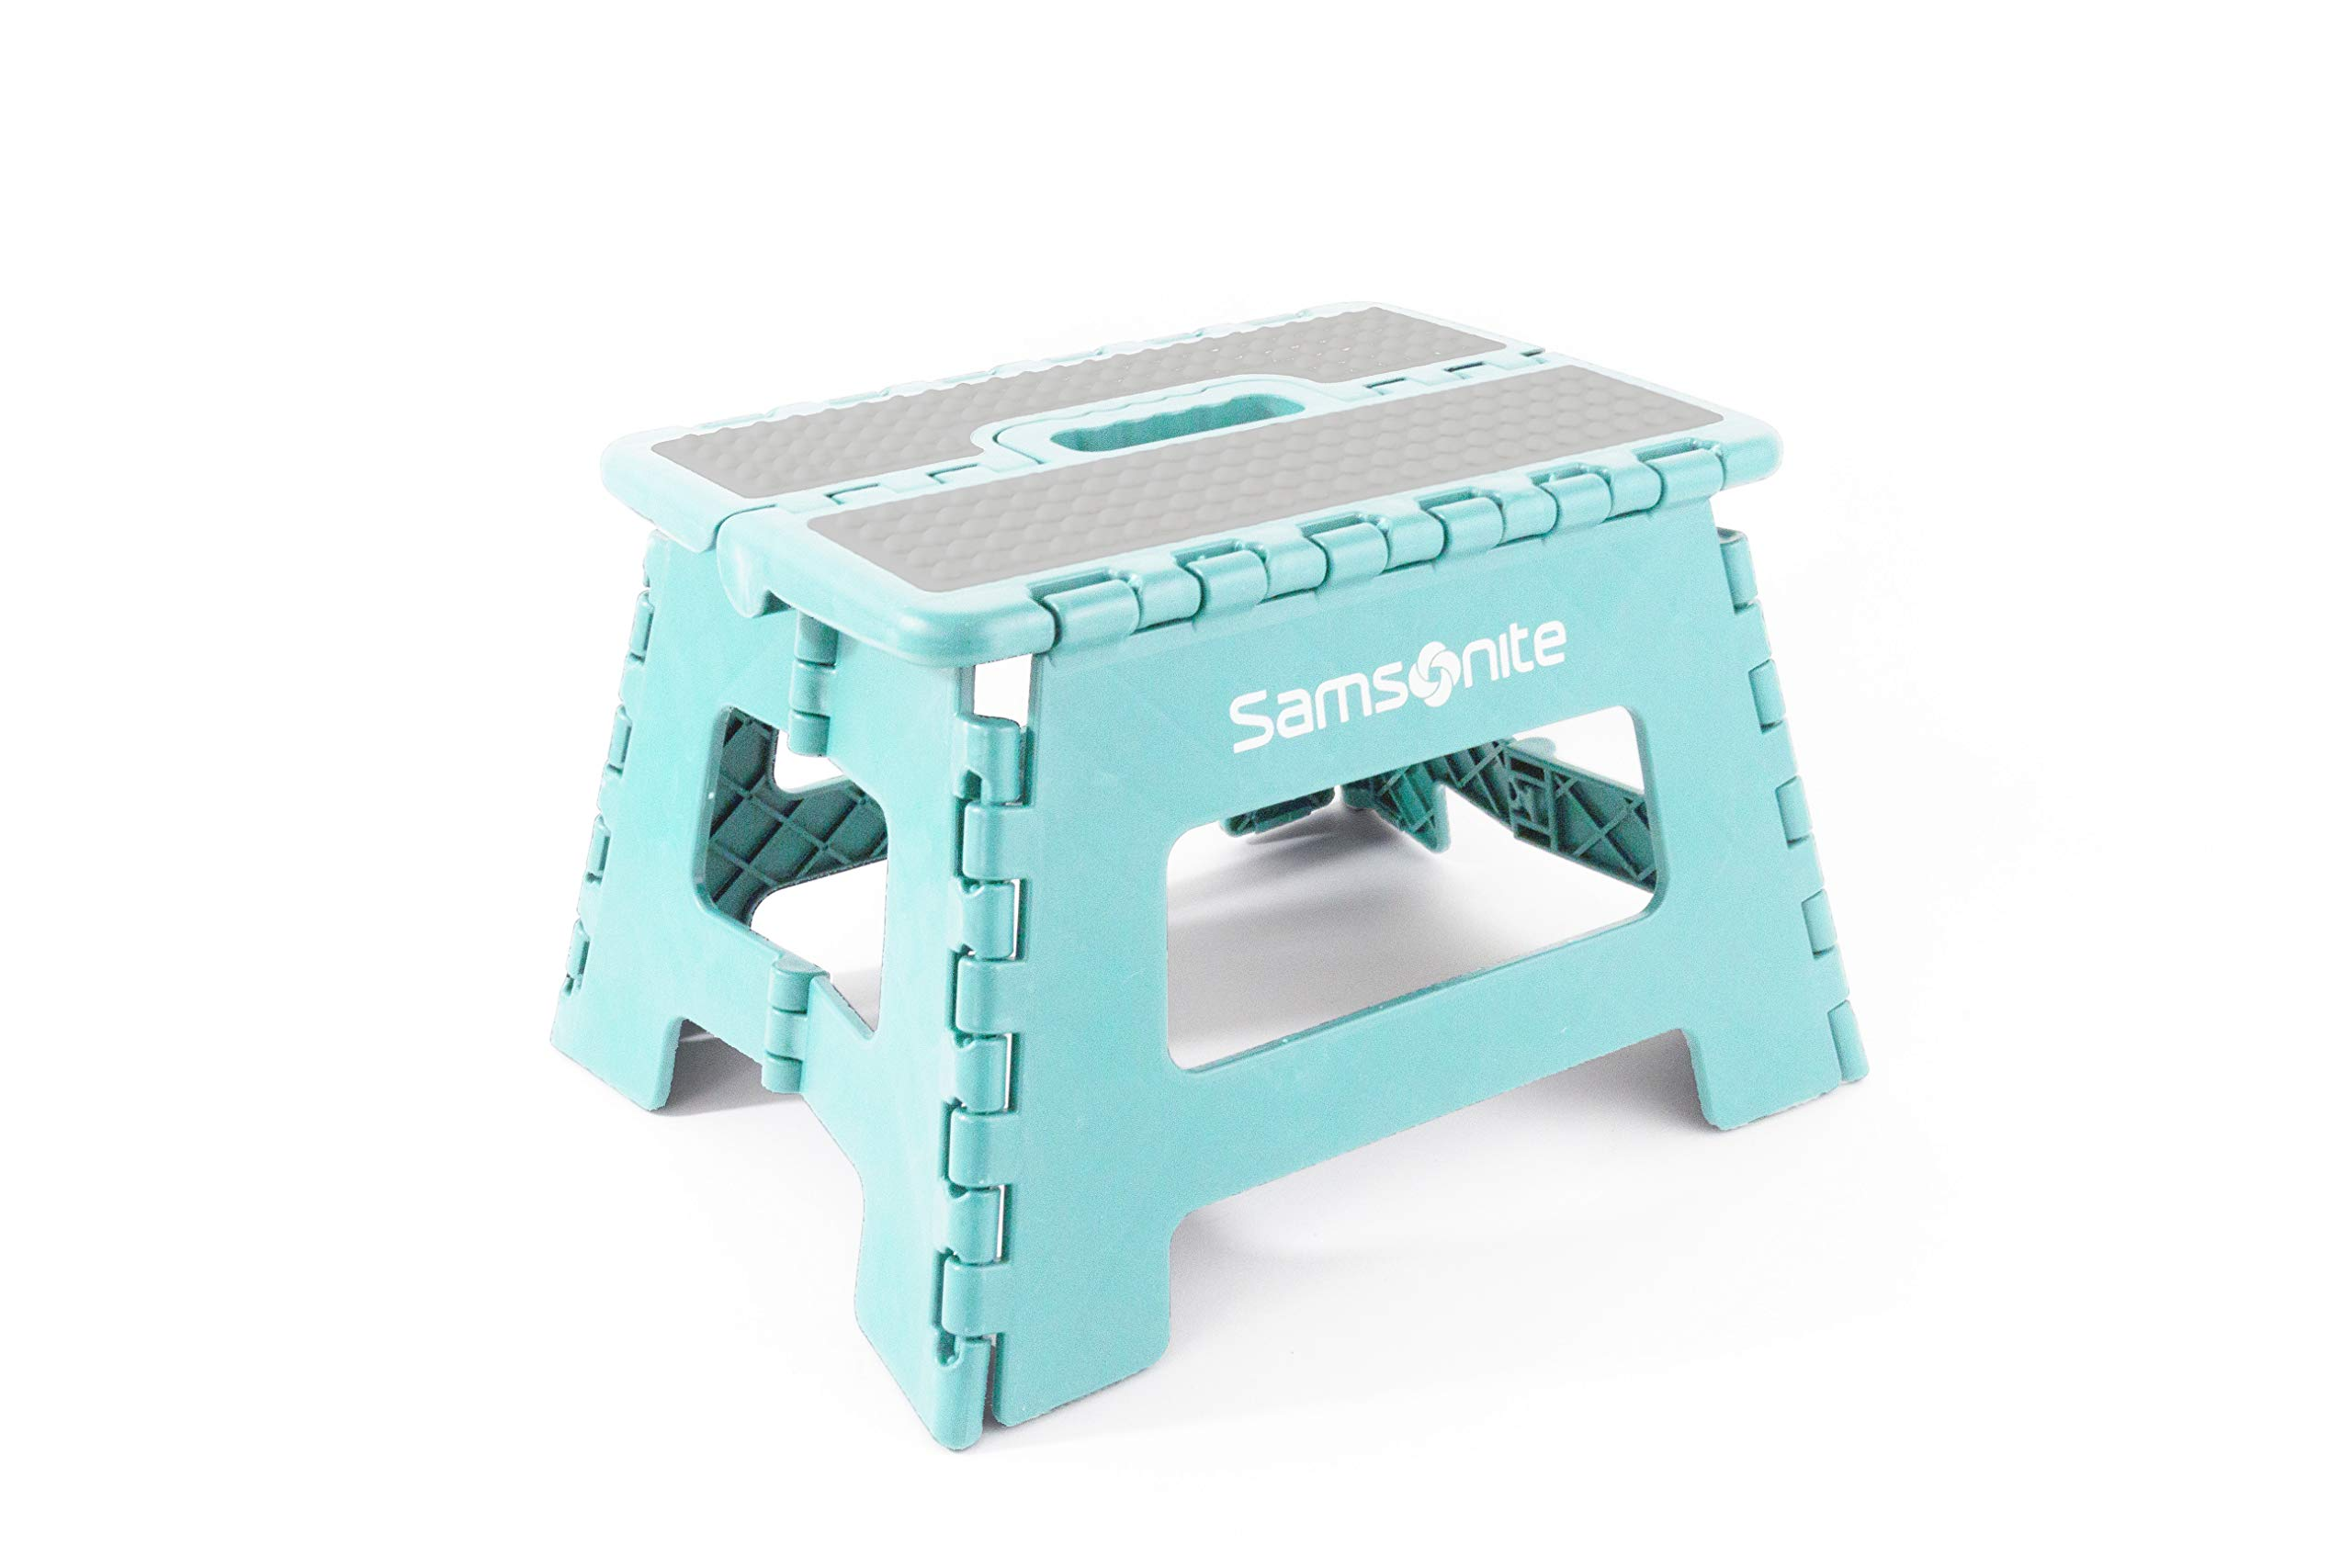 Samsonite Heavy Duty Folding Step Stool in Ocean Blue - (9'' Reg Width) by Vanderbilt Home